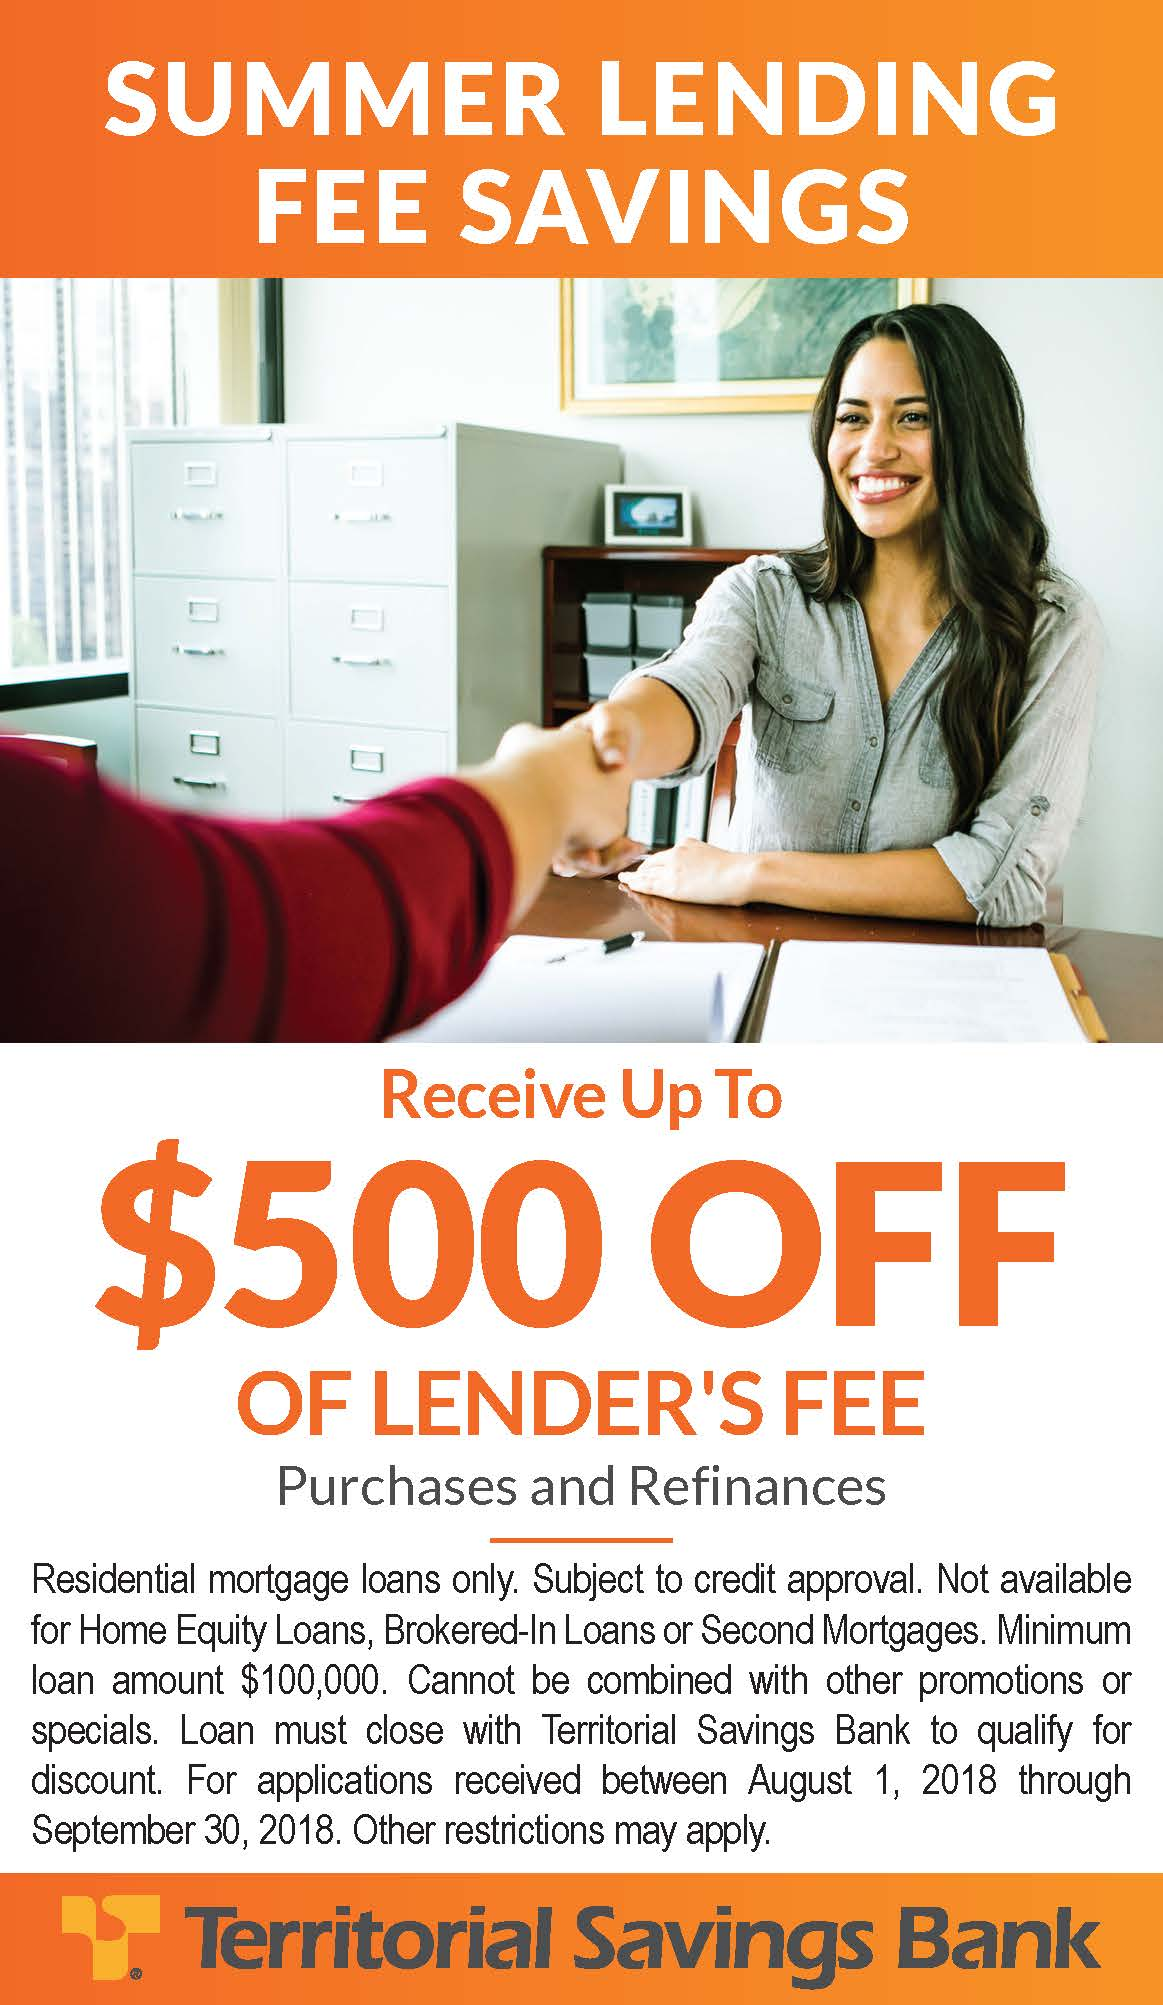 Territorial Savings Bank - Summer Lending Special. Receive up to $500 OFF OF LENDER'S FE Residential mortgage loans only. Subject to credit approval. Not available for Home Equity Loans, Brokered-In Loans or Second Mortgages. Minimum loan amount $100,000. Cannot be combined with other promotions or specials. Loan must close with Territorial Savings Bank to qualify for discount. For applications received between August 1, 2018 through September 30, 2018. Other restrictions may apply.